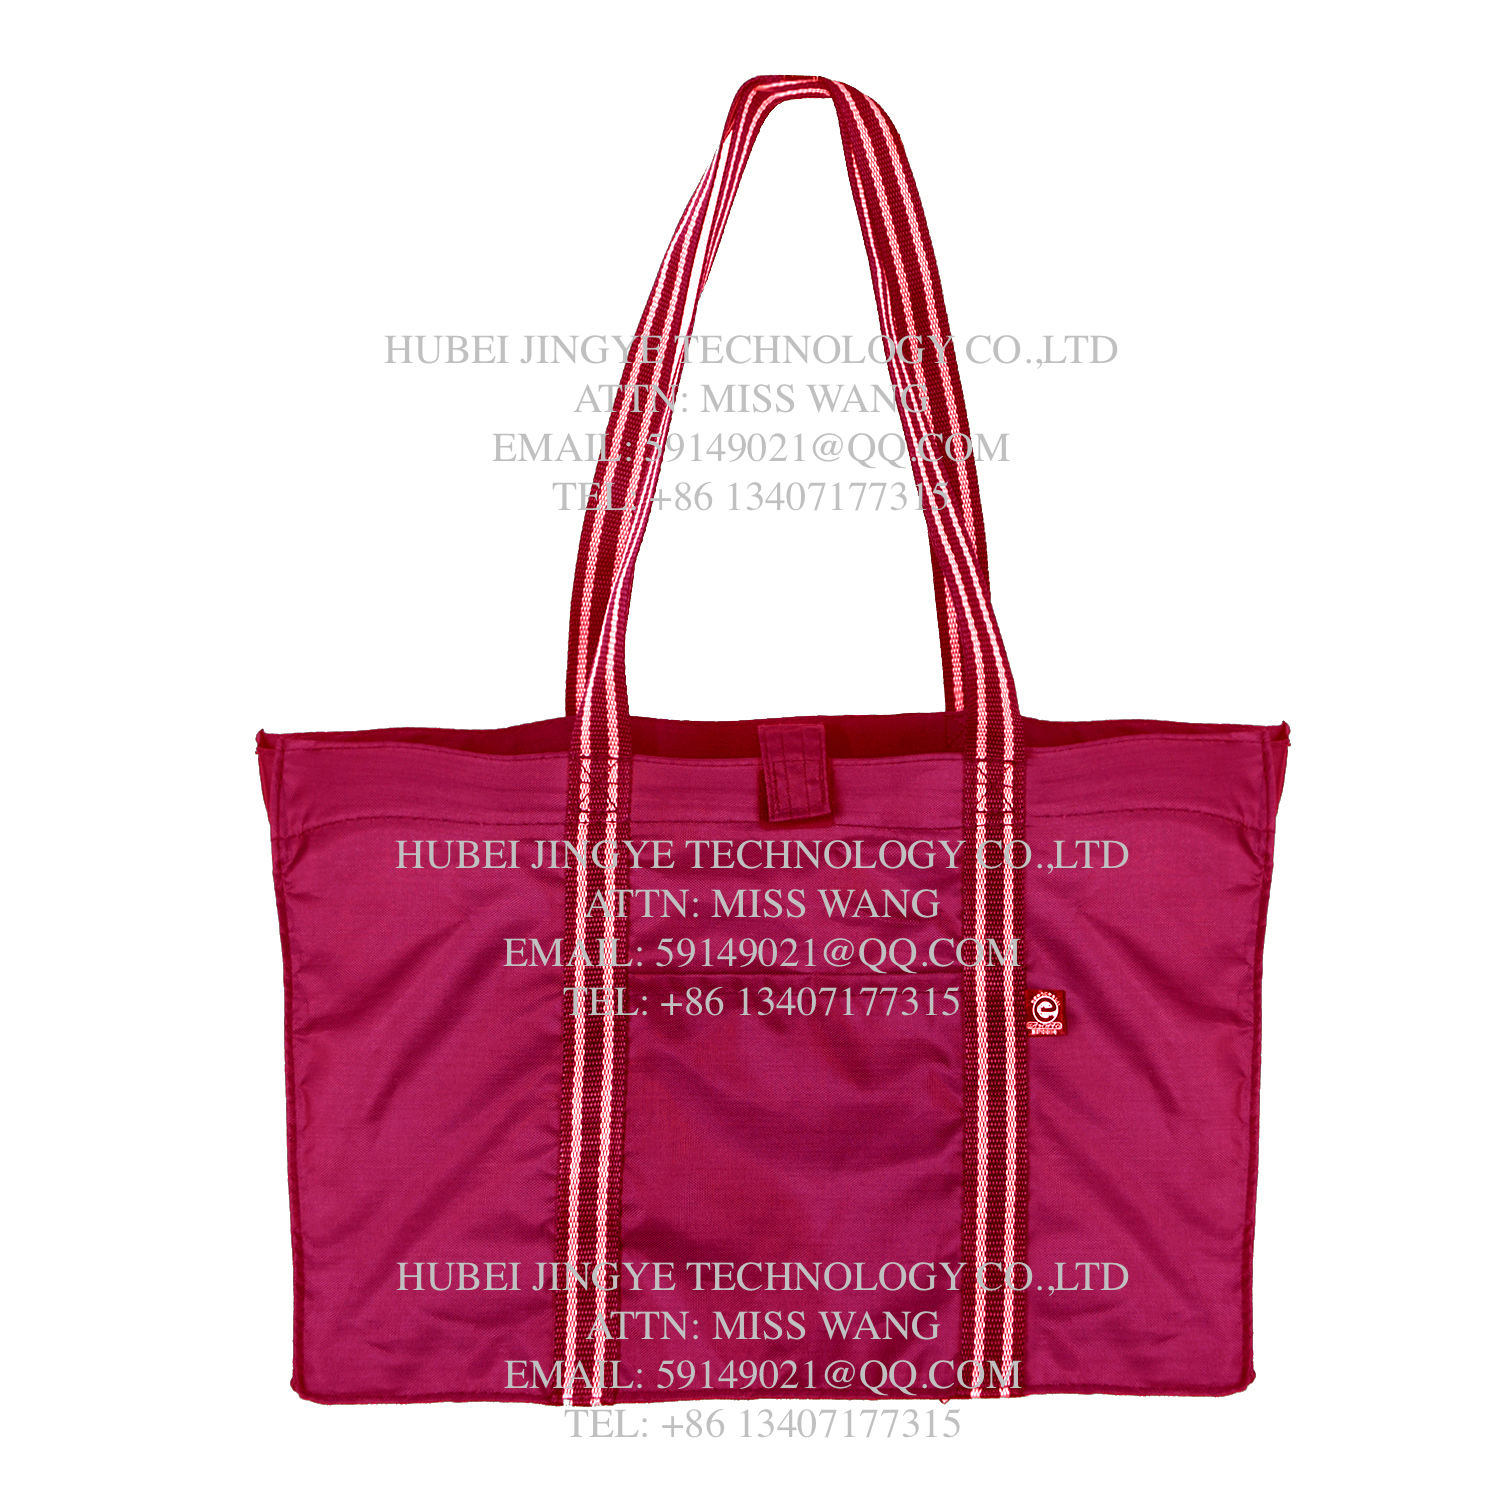 Promotional Fashion Foldable Polyester Shopping Tote Handbags travel bag